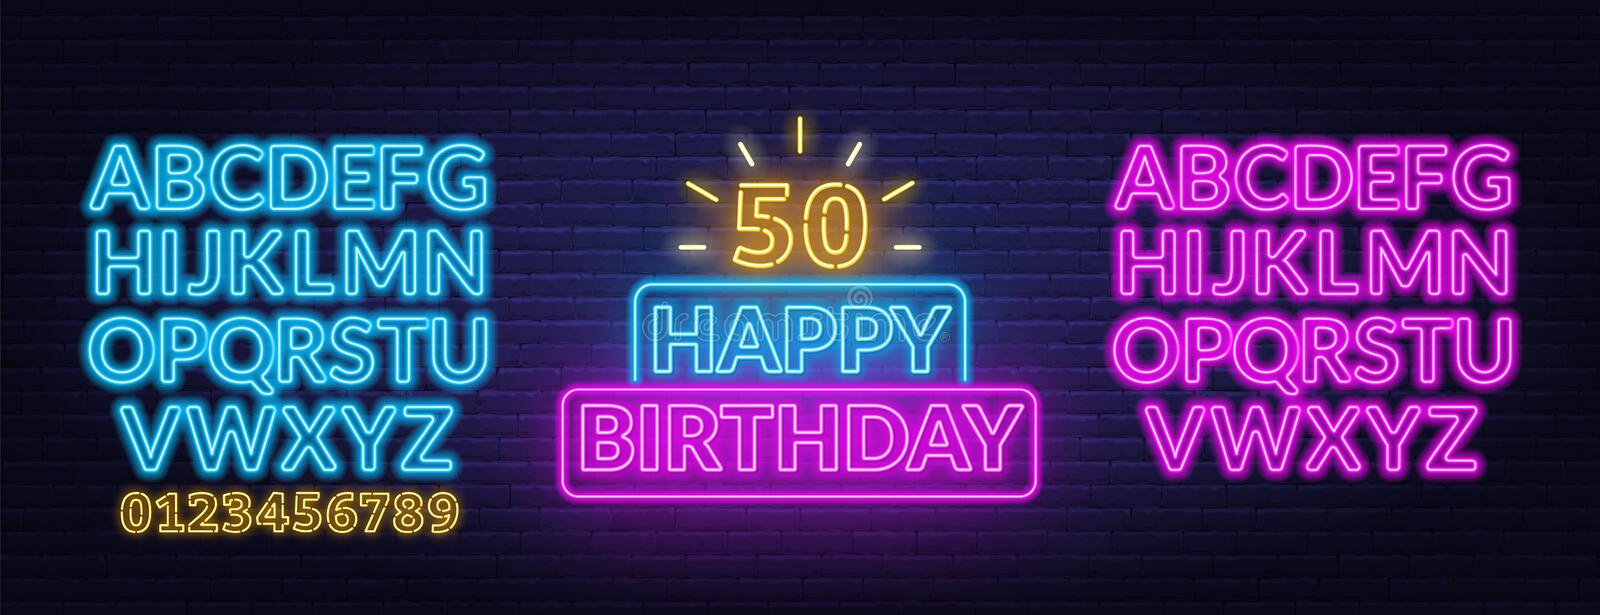 Happy birthday neon sign. Greeting card template on dark background. Vector illustration of EPS 10 vector illustration